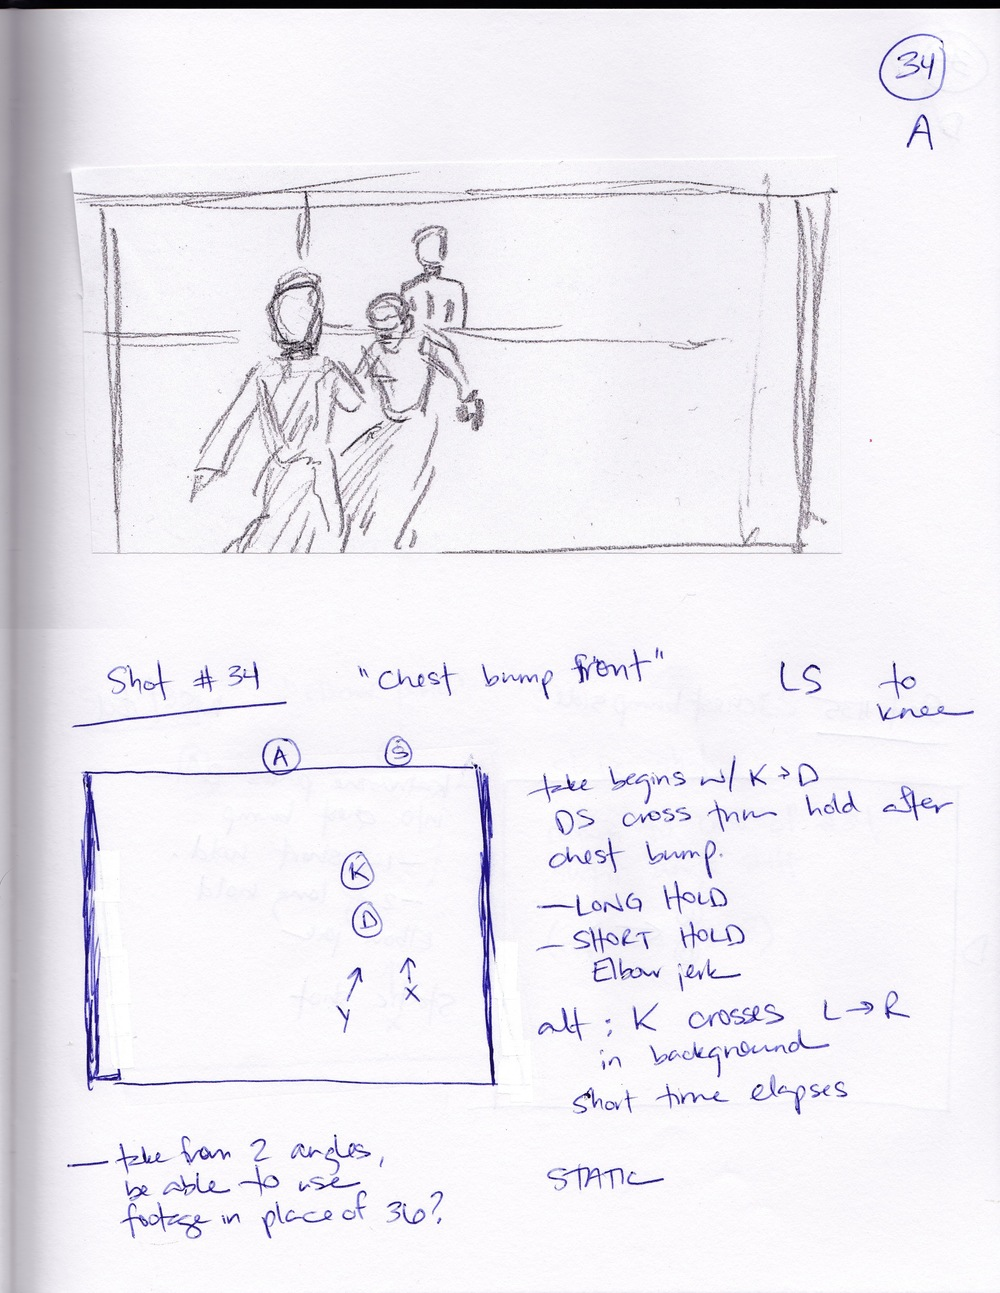 Storyboard art by Doruk Golcu